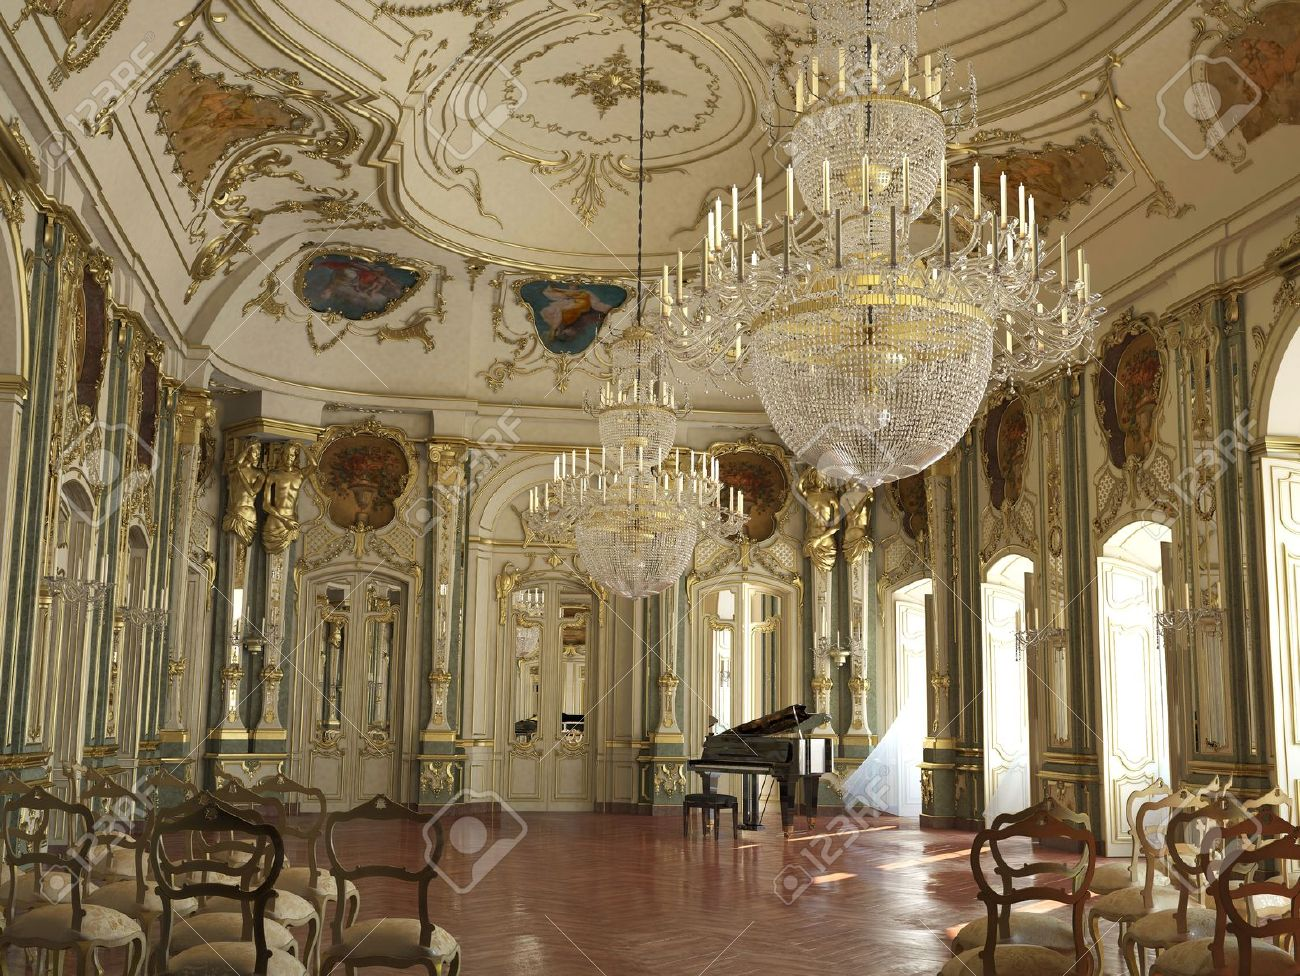 Preciosa lighting berkana ball room oversized chandelier 19893968-Majestic-large-decorated-piano-con